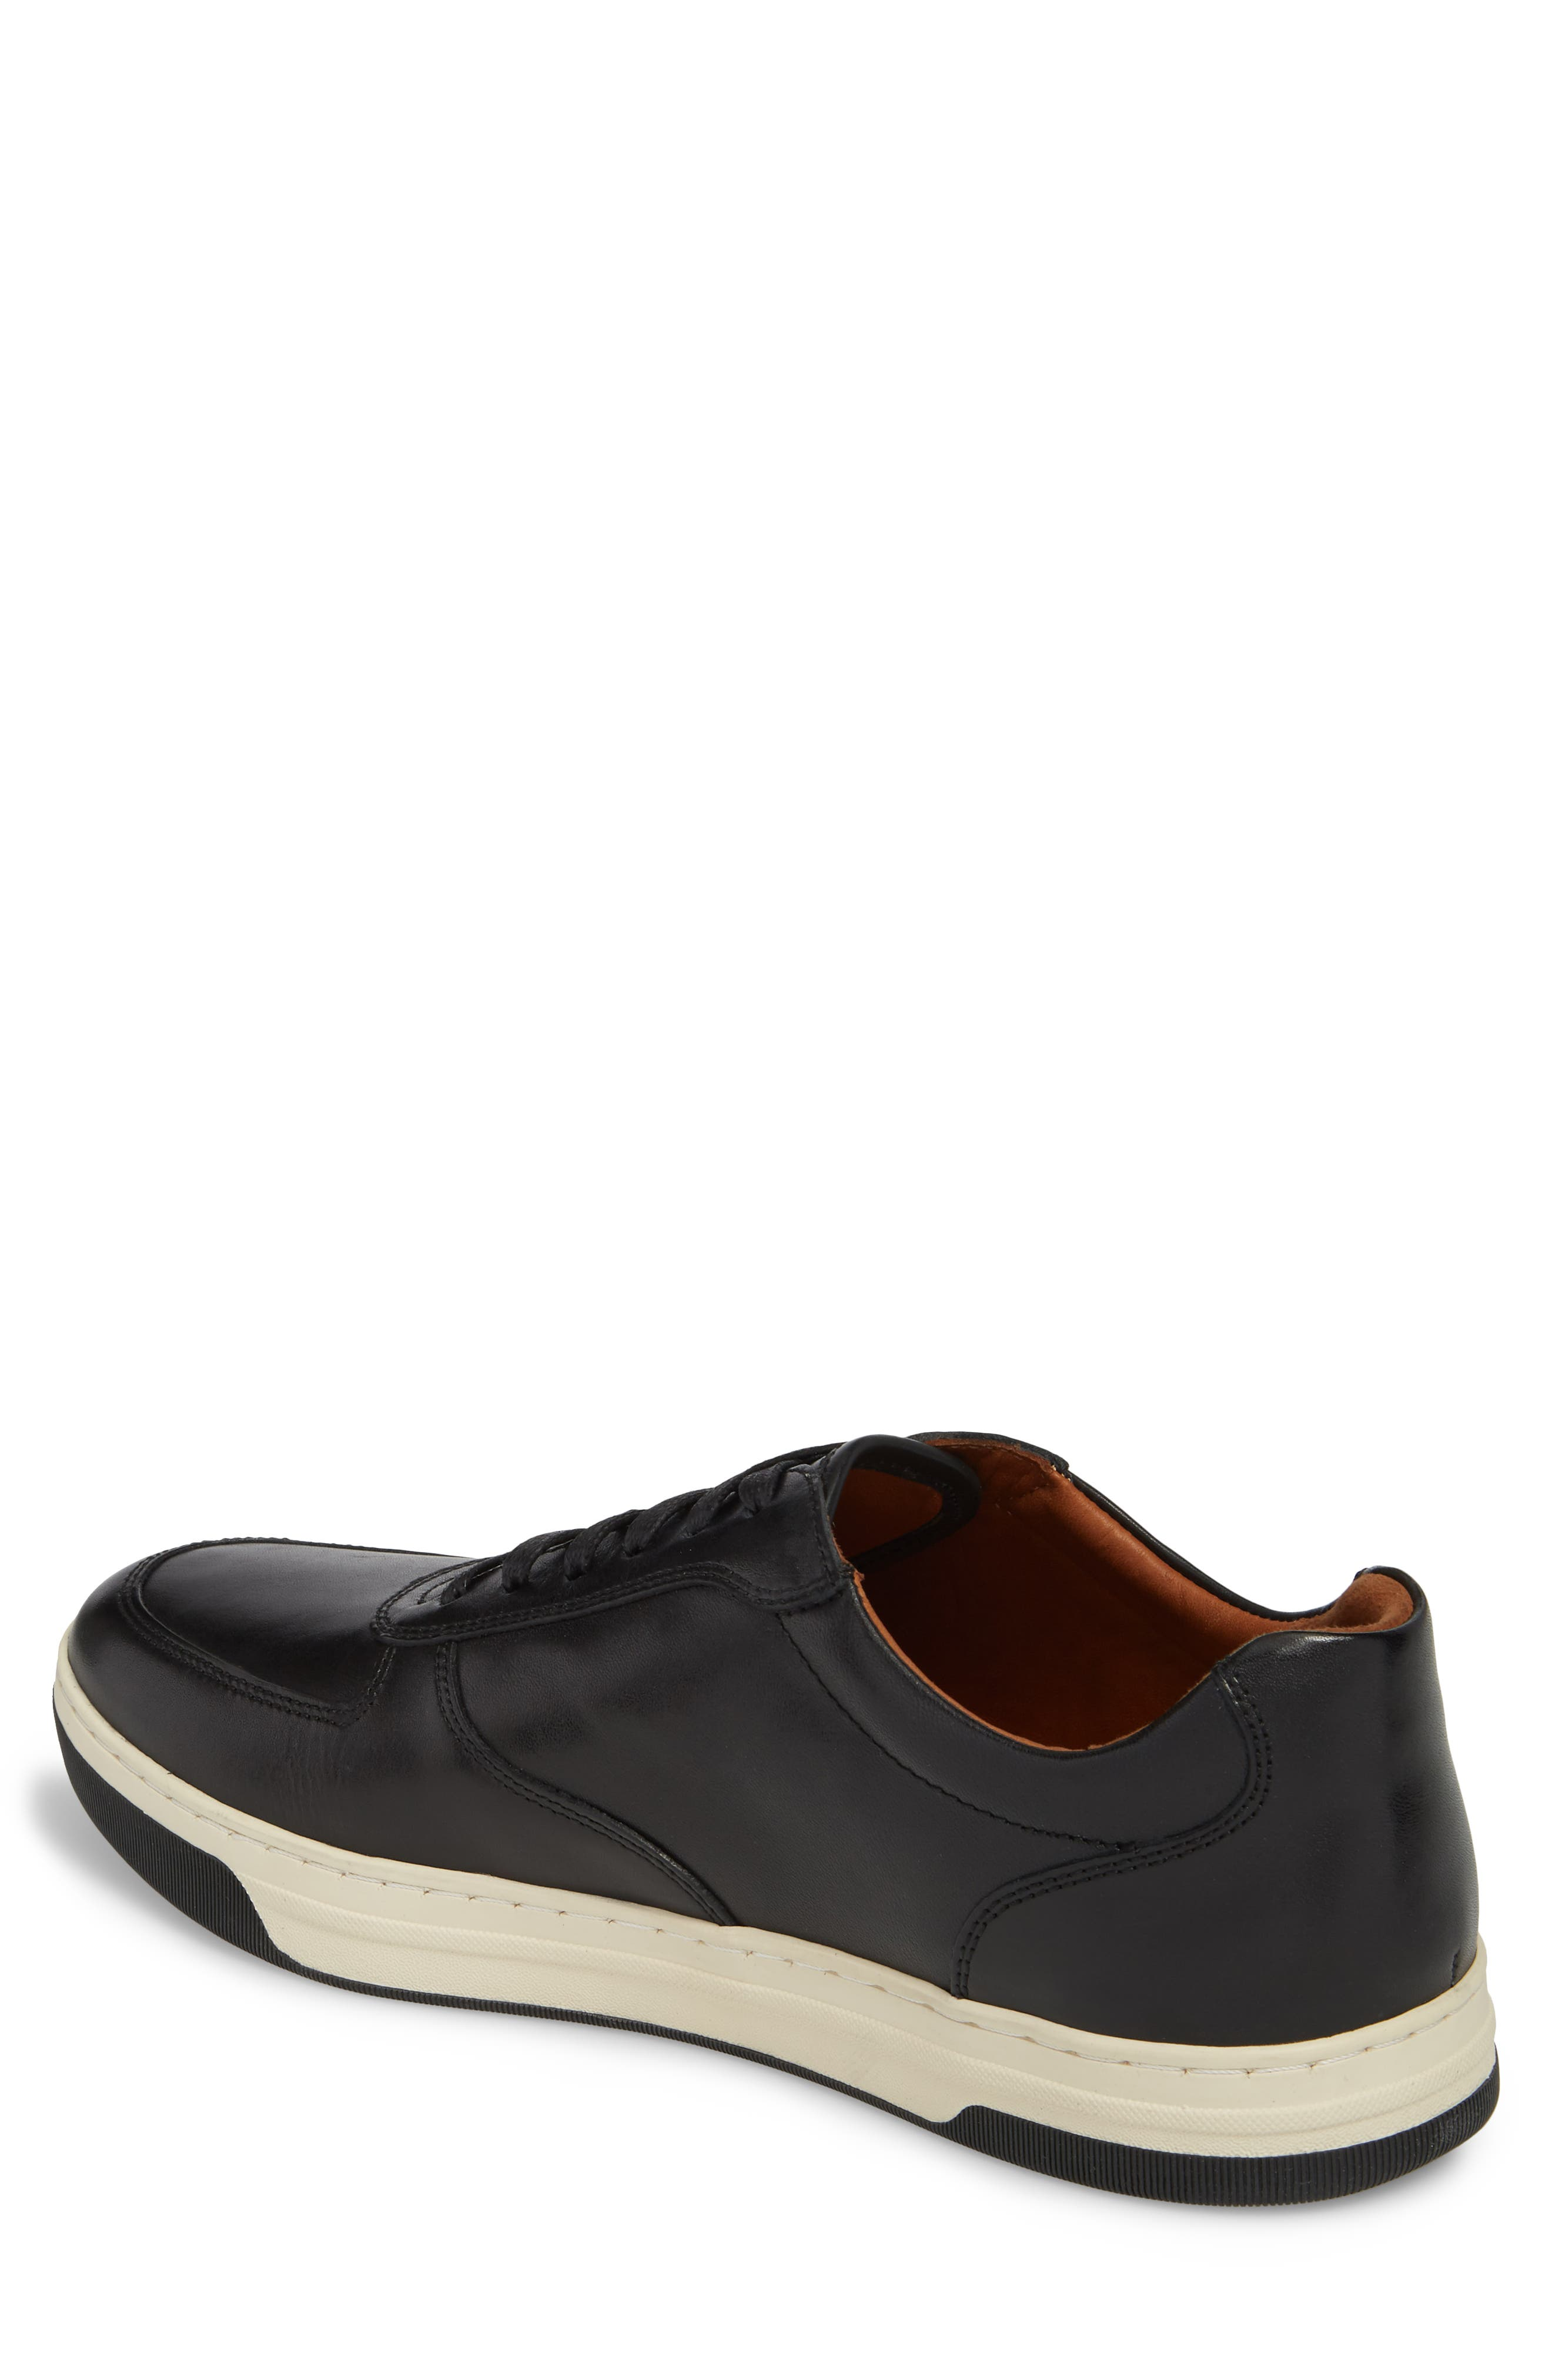 Fenton Low Top Sneaker,                             Alternate thumbnail 2, color,                             Black Leather